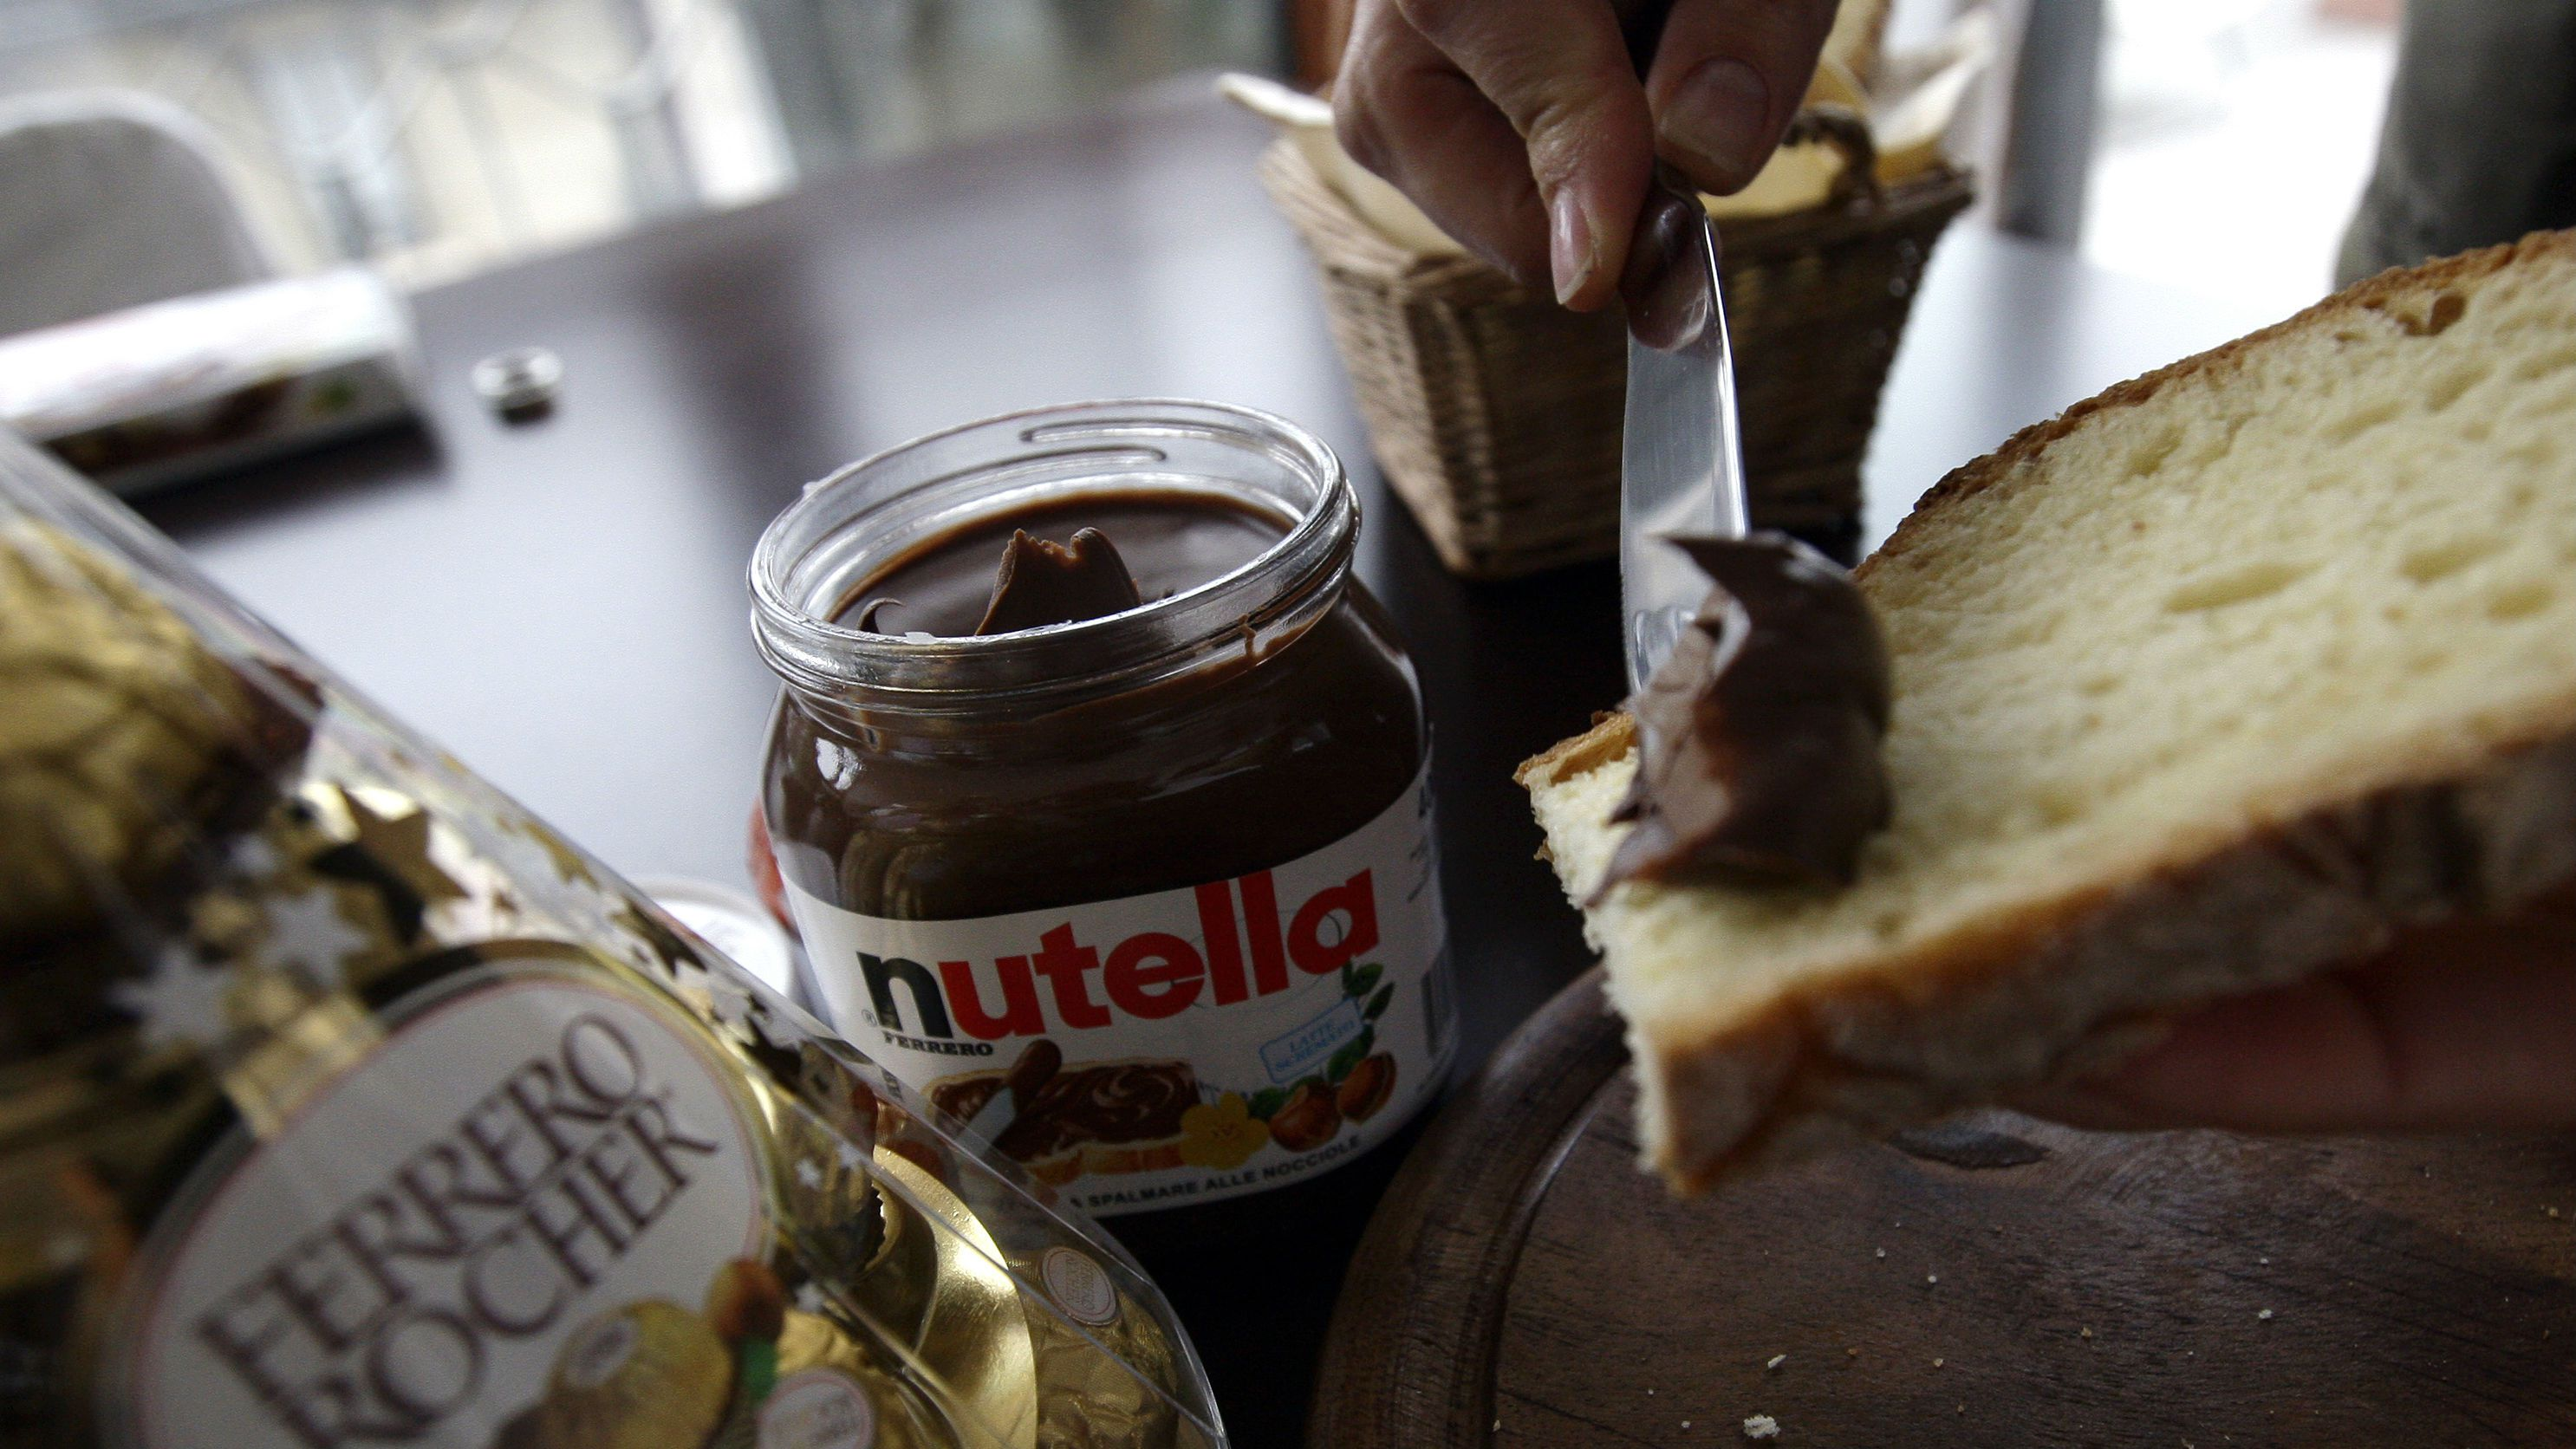 A woman spreads Nutella on a slice of bread in Milan November 20, 2009. Cadbury suitors Ferrero and Hershey would likely break the UK confectioner up into separate businesses if a mooted bid for the company succeeds, an Italian newspaper reported. Italian chocolate maker Ferrero and U.S.-based Hershey said on Wednesday they were reviewing a possible offer for Cadbury, which is the subject of a hostile 9.9 billion pound ($16.5 billion) bid by U.S. food group Kraft. Unlisted Ferrero is mainly interested in Cadbury's gum and candy division, a unit worth about 5 billion euros ($7.4 billion), business daily Il Sole 24 Ore said on Friday. REUTERS/Stefano Rellandini (ITALY BUSINESS FOOD)